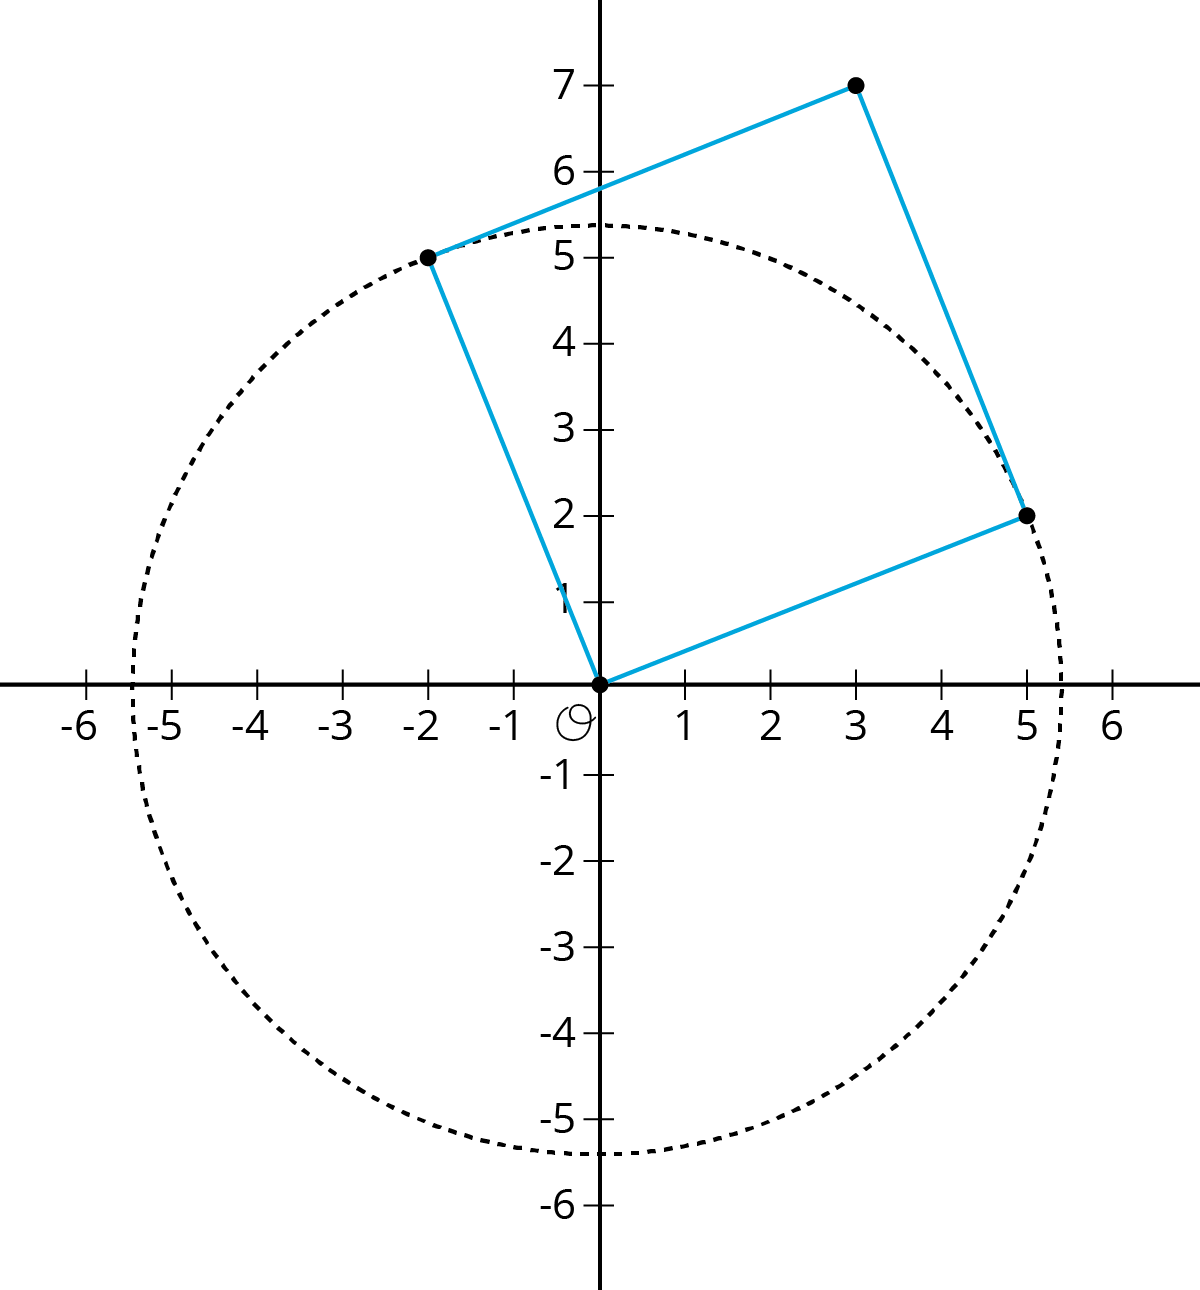 """A coordinate plane with the origin labeled """"O."""" The x-axis has the numbers negative 6 through 6 indicated with tick marks. The y-axis has the numbers negative 6 through 7 indicated with tick marks. A square and a circle are drawn on the grid so that the circle's circumference passes through 2 of the squares vertices. The circle's center is the origin and it's circumference is indicated by a dashed line that passes through the following approximate points on the axes: Negative 5 point 3 comma 0, 0 comma 5 point 3, 5 point 3 comma 0, and 0 comma negative 5 point 3.  The square is tilted so that all its sides are diagonal to the coordinate grid. It has vertices at: 0 comma 0, negative 2 comma 5, 3 comma 7, and 5 comma 2. The circumference of the circle passes through the square's vertices at negative 2 comma 5 and 5 comma 2 so that the sides of the square, extending from the origin to those 2 vertices, are within the circle. @Kia Johnson I didn't want to say that the sides of the square were the radius felt like taking away some of the cognitive demand) but felt a little wordy. REPLY 11:44 (Fixed some language, now that I am writing for same image on grid): A coordinate plane with the origin labeled """"O."""" The x-axis has the numbers negative 6 through 6 indicated with tick marks. The y-axis has the numbers negative 6 through 7 indicated with tick marks. A square and a circle are drawn on the plane so that the circle's circumference passes through 2 of the squares vertices. The circle's center is the origin and it's circumference is indicated by a dashed line that passes through the following approximate points on the axes: Negative 5 point 3 comma 0, 0 comma 5 point 3, 5 point 3 comma 0, and 0 comma negative 5 point 3.  The square is tilted so that all its sides are diagonal to the coordinate grid. It has vertices at: 0 comma 0, negative 2 comma 5, 3 comma 7, and 5 comma 2. The circumference of the circle passes through the square's vertices at negative 2 comma 5 and 5 c"""